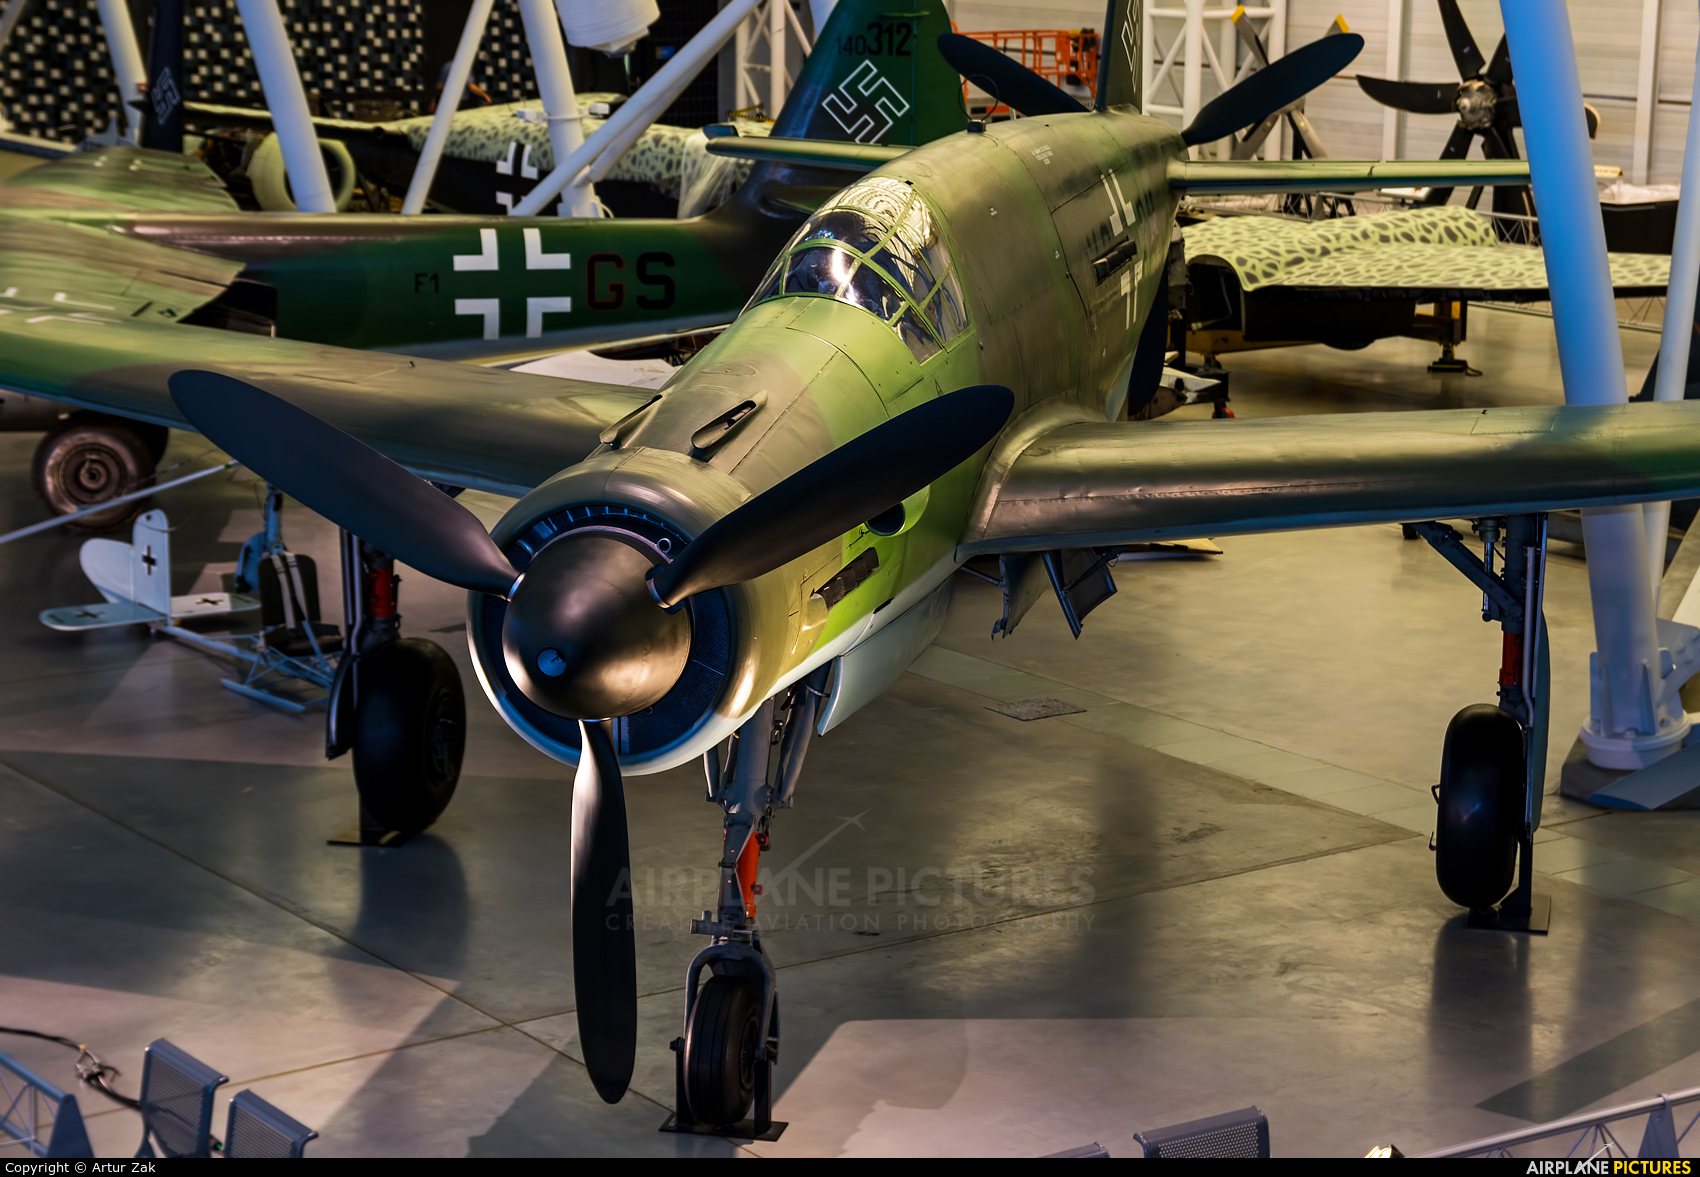 Germany - Luftwaffe (WW2) - aircraft at Steven F. Udvar-Hazy Center